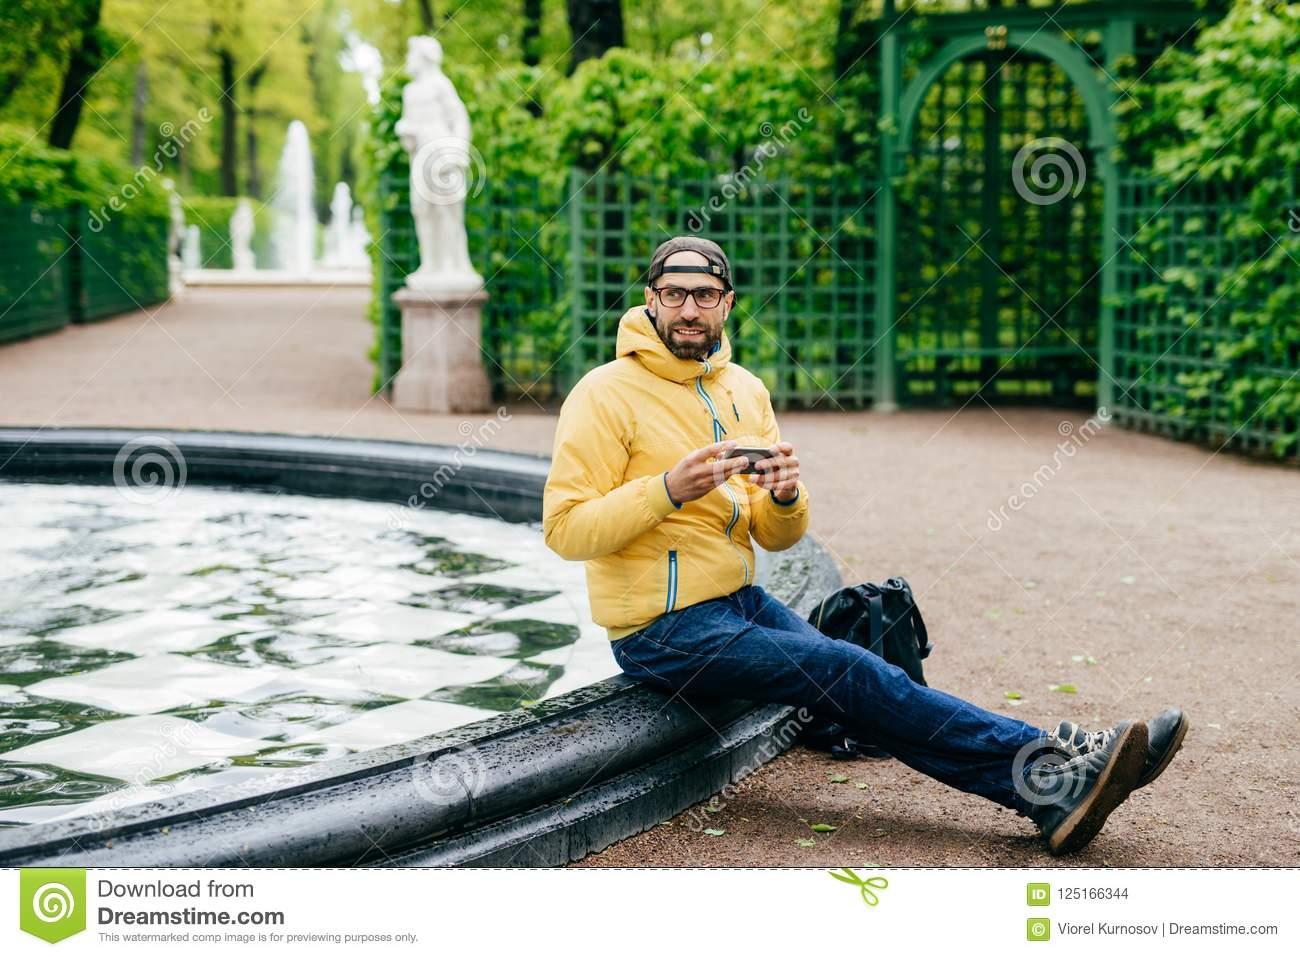 Outdoor portrait of bushy man wearing cap, jacket, jeans and eyeglasses having rest near fountain holding his modern device in han